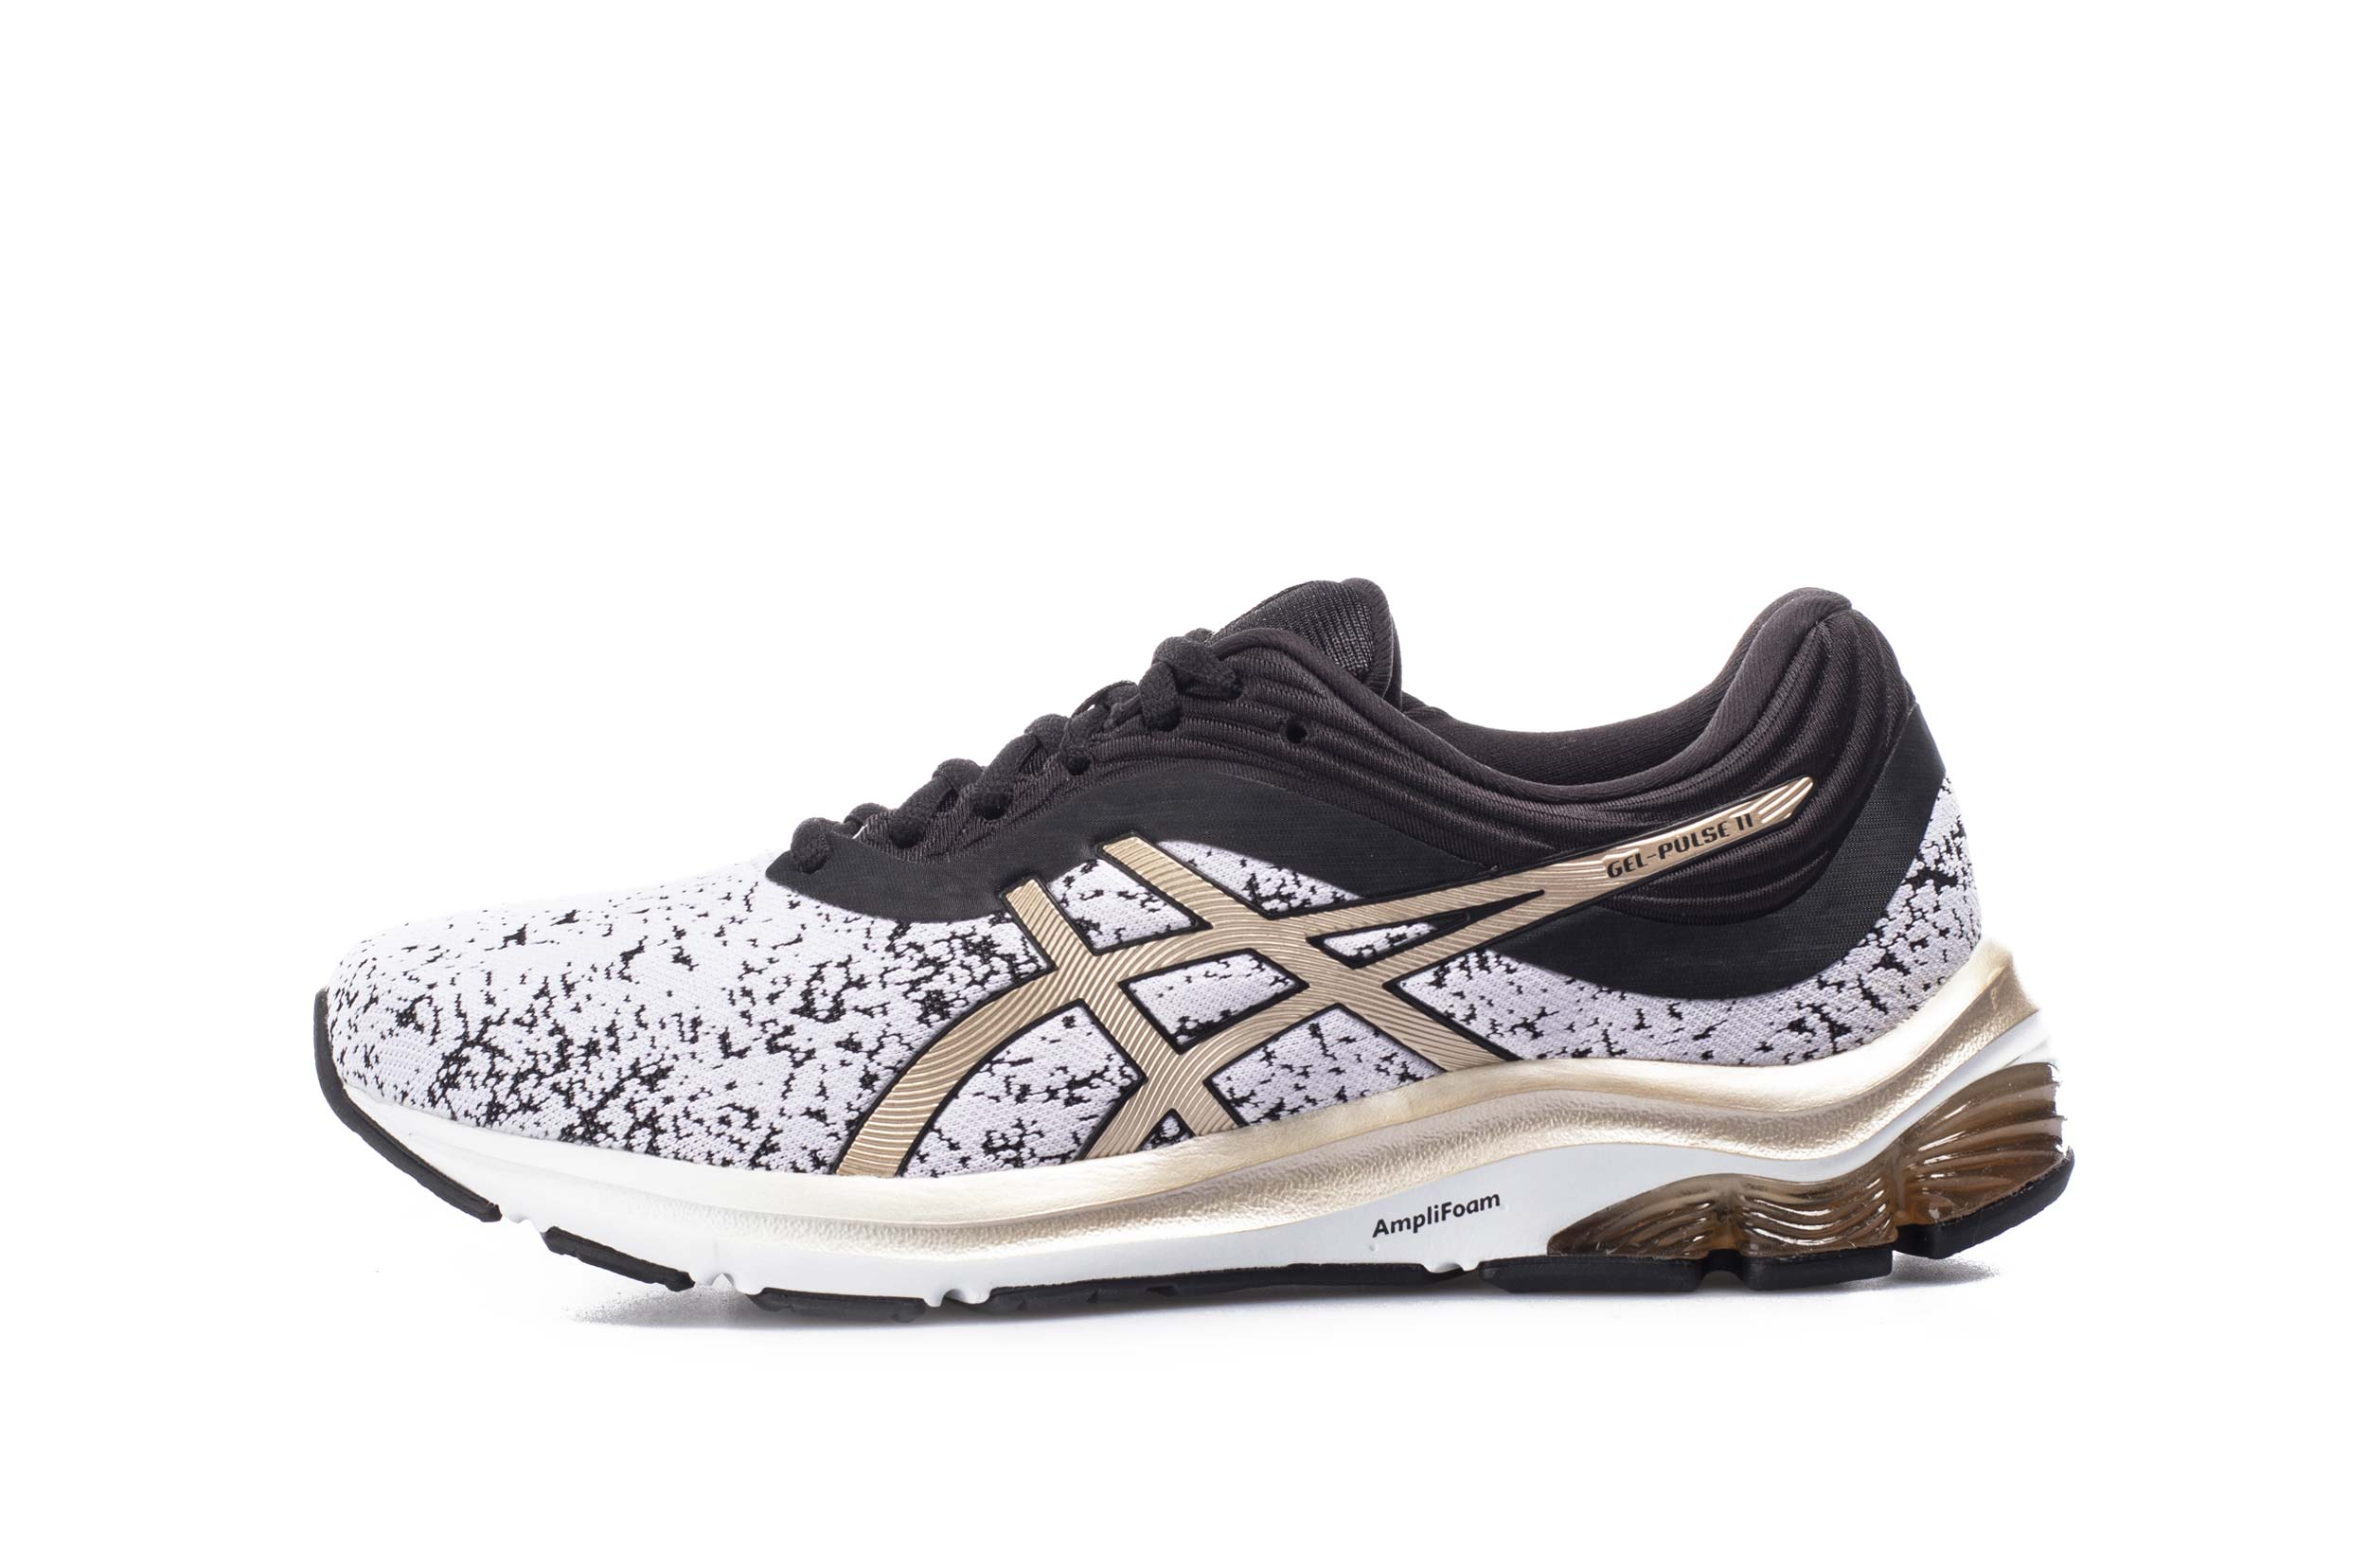 ASICS GEL-PULSE 11 SPS 1022A237-100 Λευκό